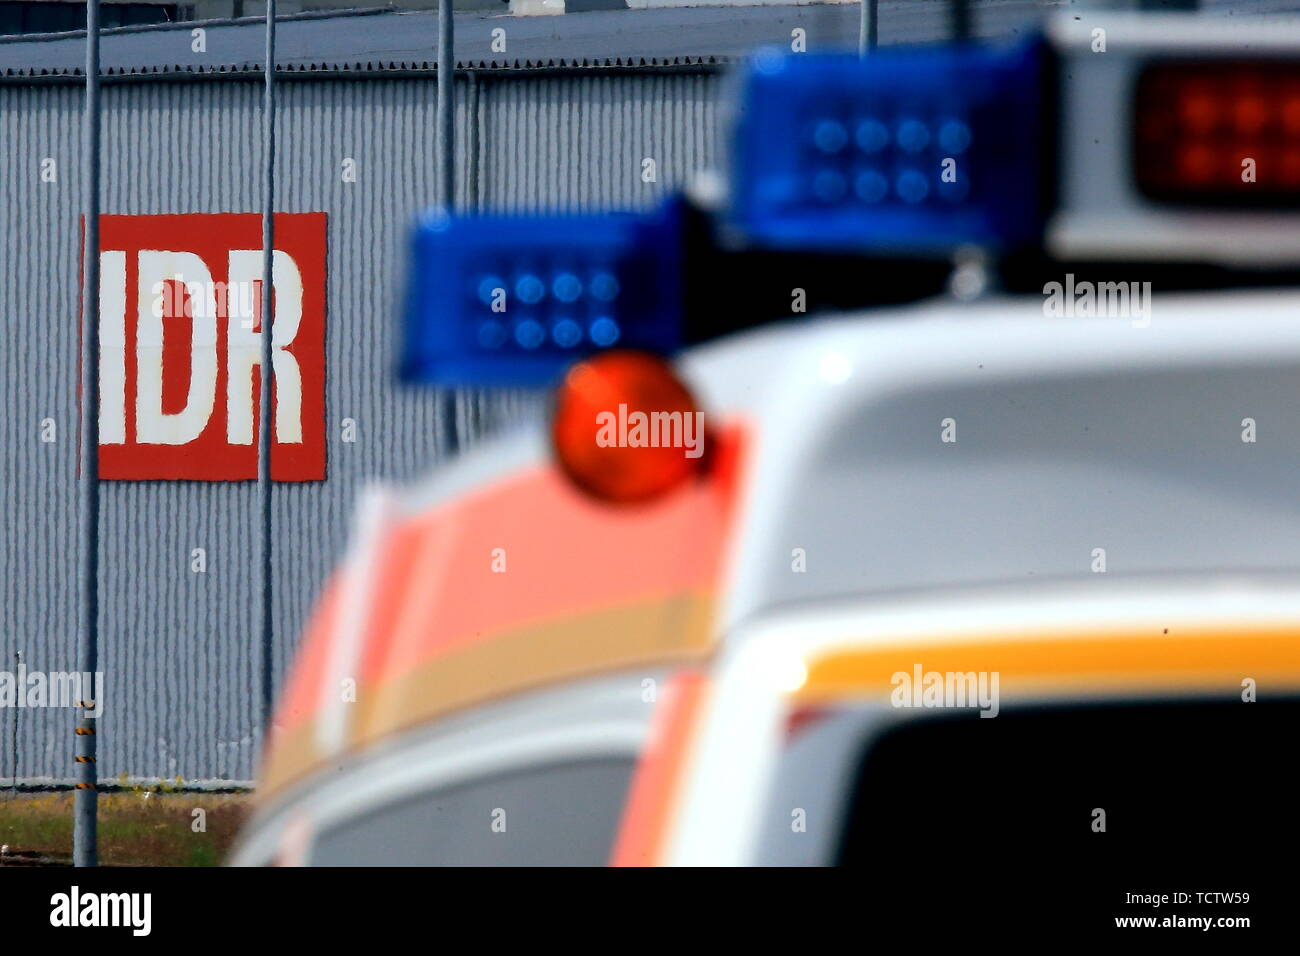 Duesseldorf, Germany. 10th June, 2019. A fire truck is parked near the IDR waste disposal plant, to which a column of dangerous goods from the fire brigade had previously brought remnants of a chemical. Parts of the chemical had previously caught fire in a warehouse for unknown reasons. Credit: David Young/dpa/Alamy Live News - Stock Image